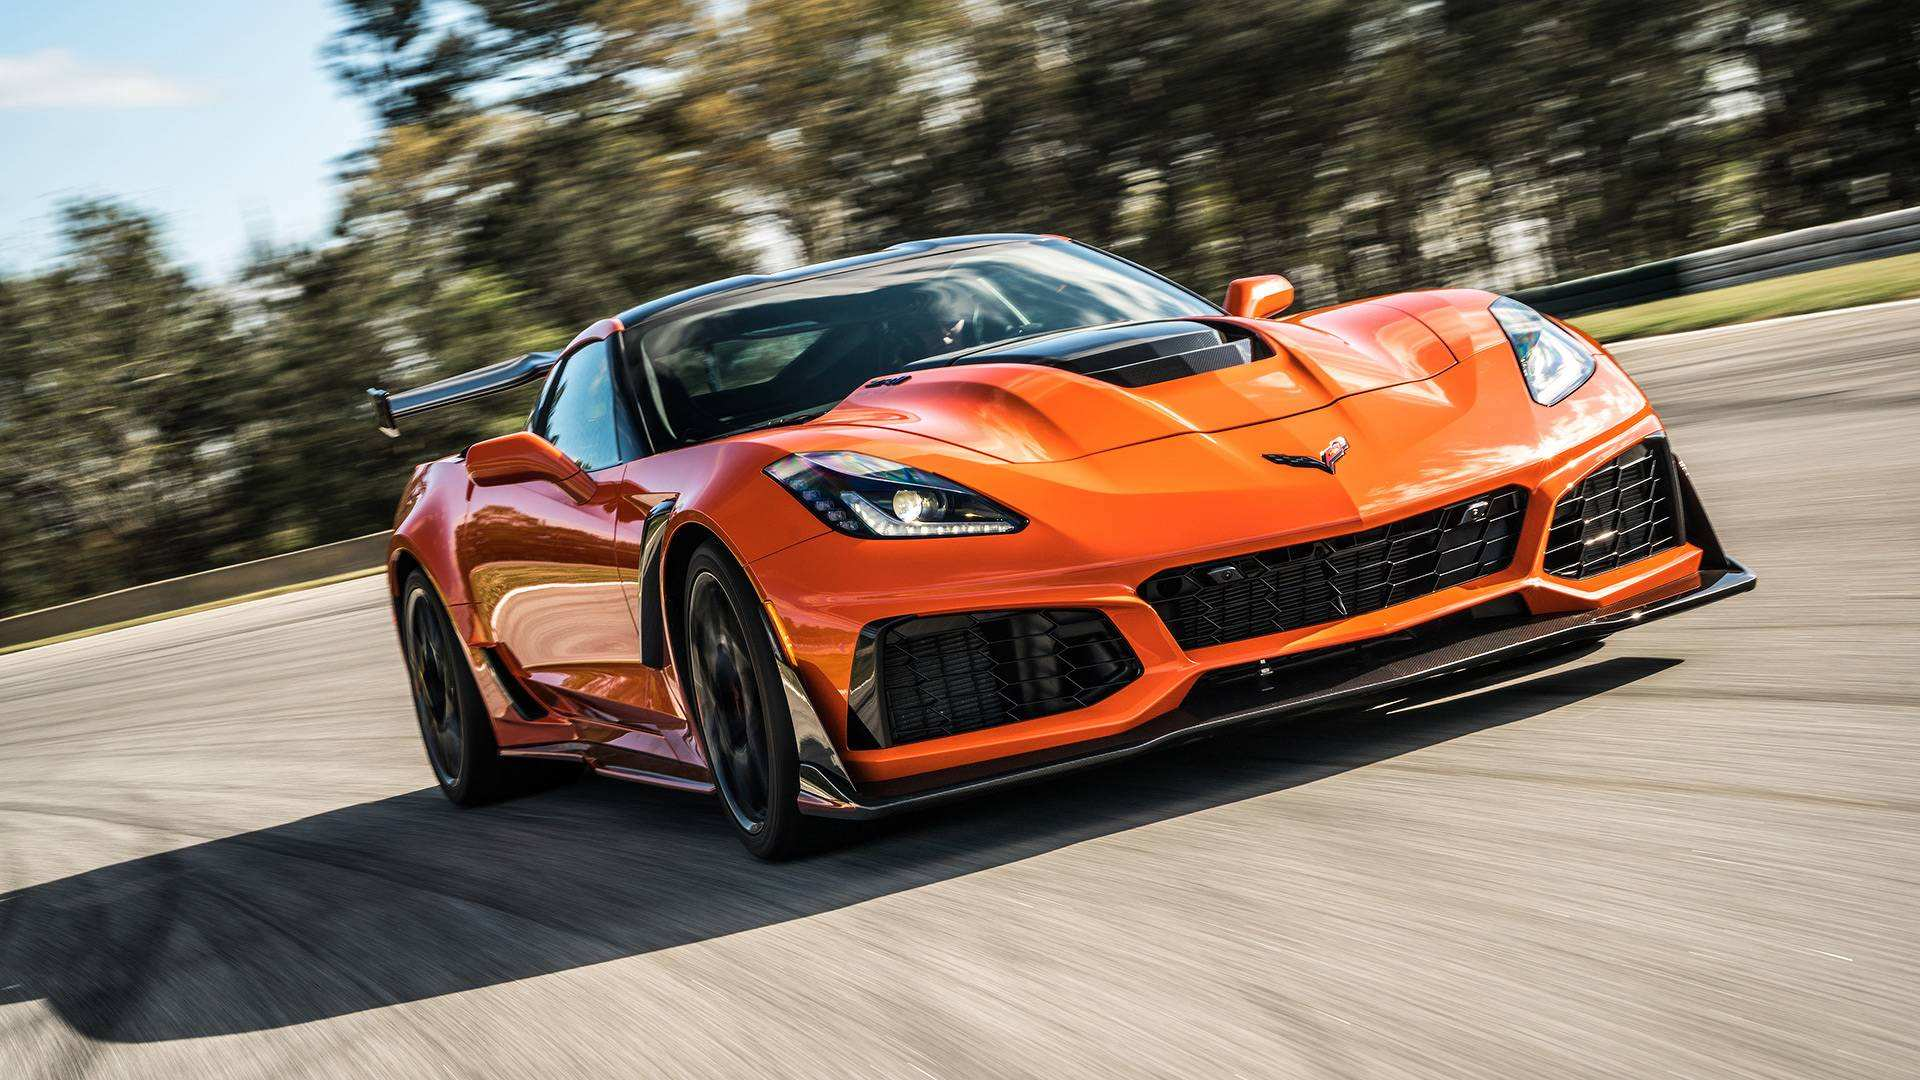 11 New New Chevrolet Corvette Zr1 2019 Spy Shoot First Drive by New Chevrolet Corvette Zr1 2019 Spy Shoot